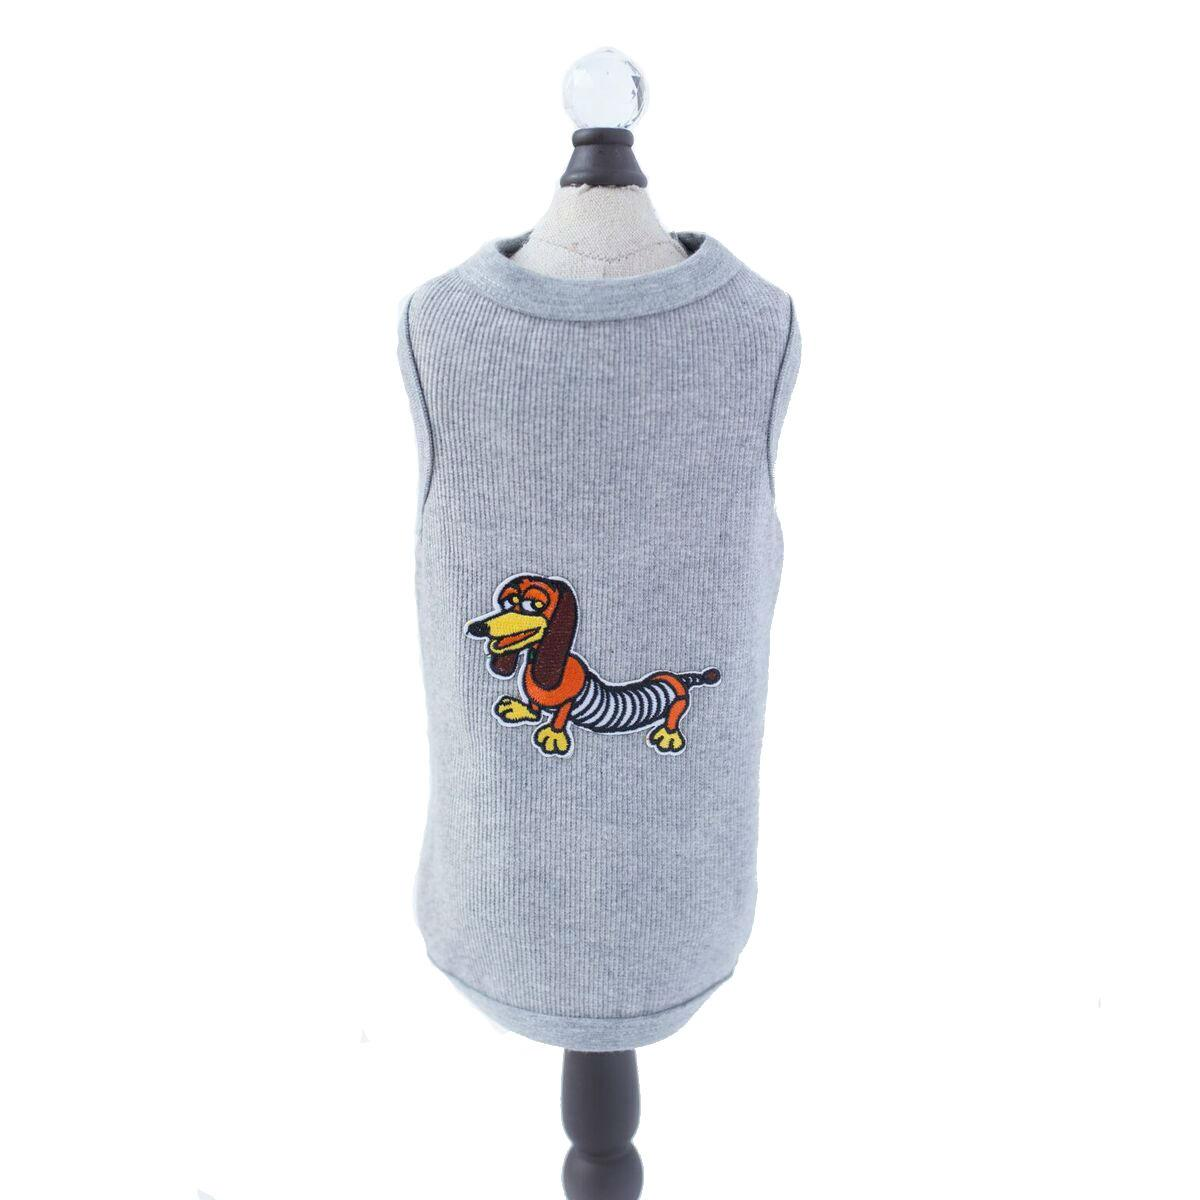 The Doxie Dog Tank by Hello Doggie - Gray